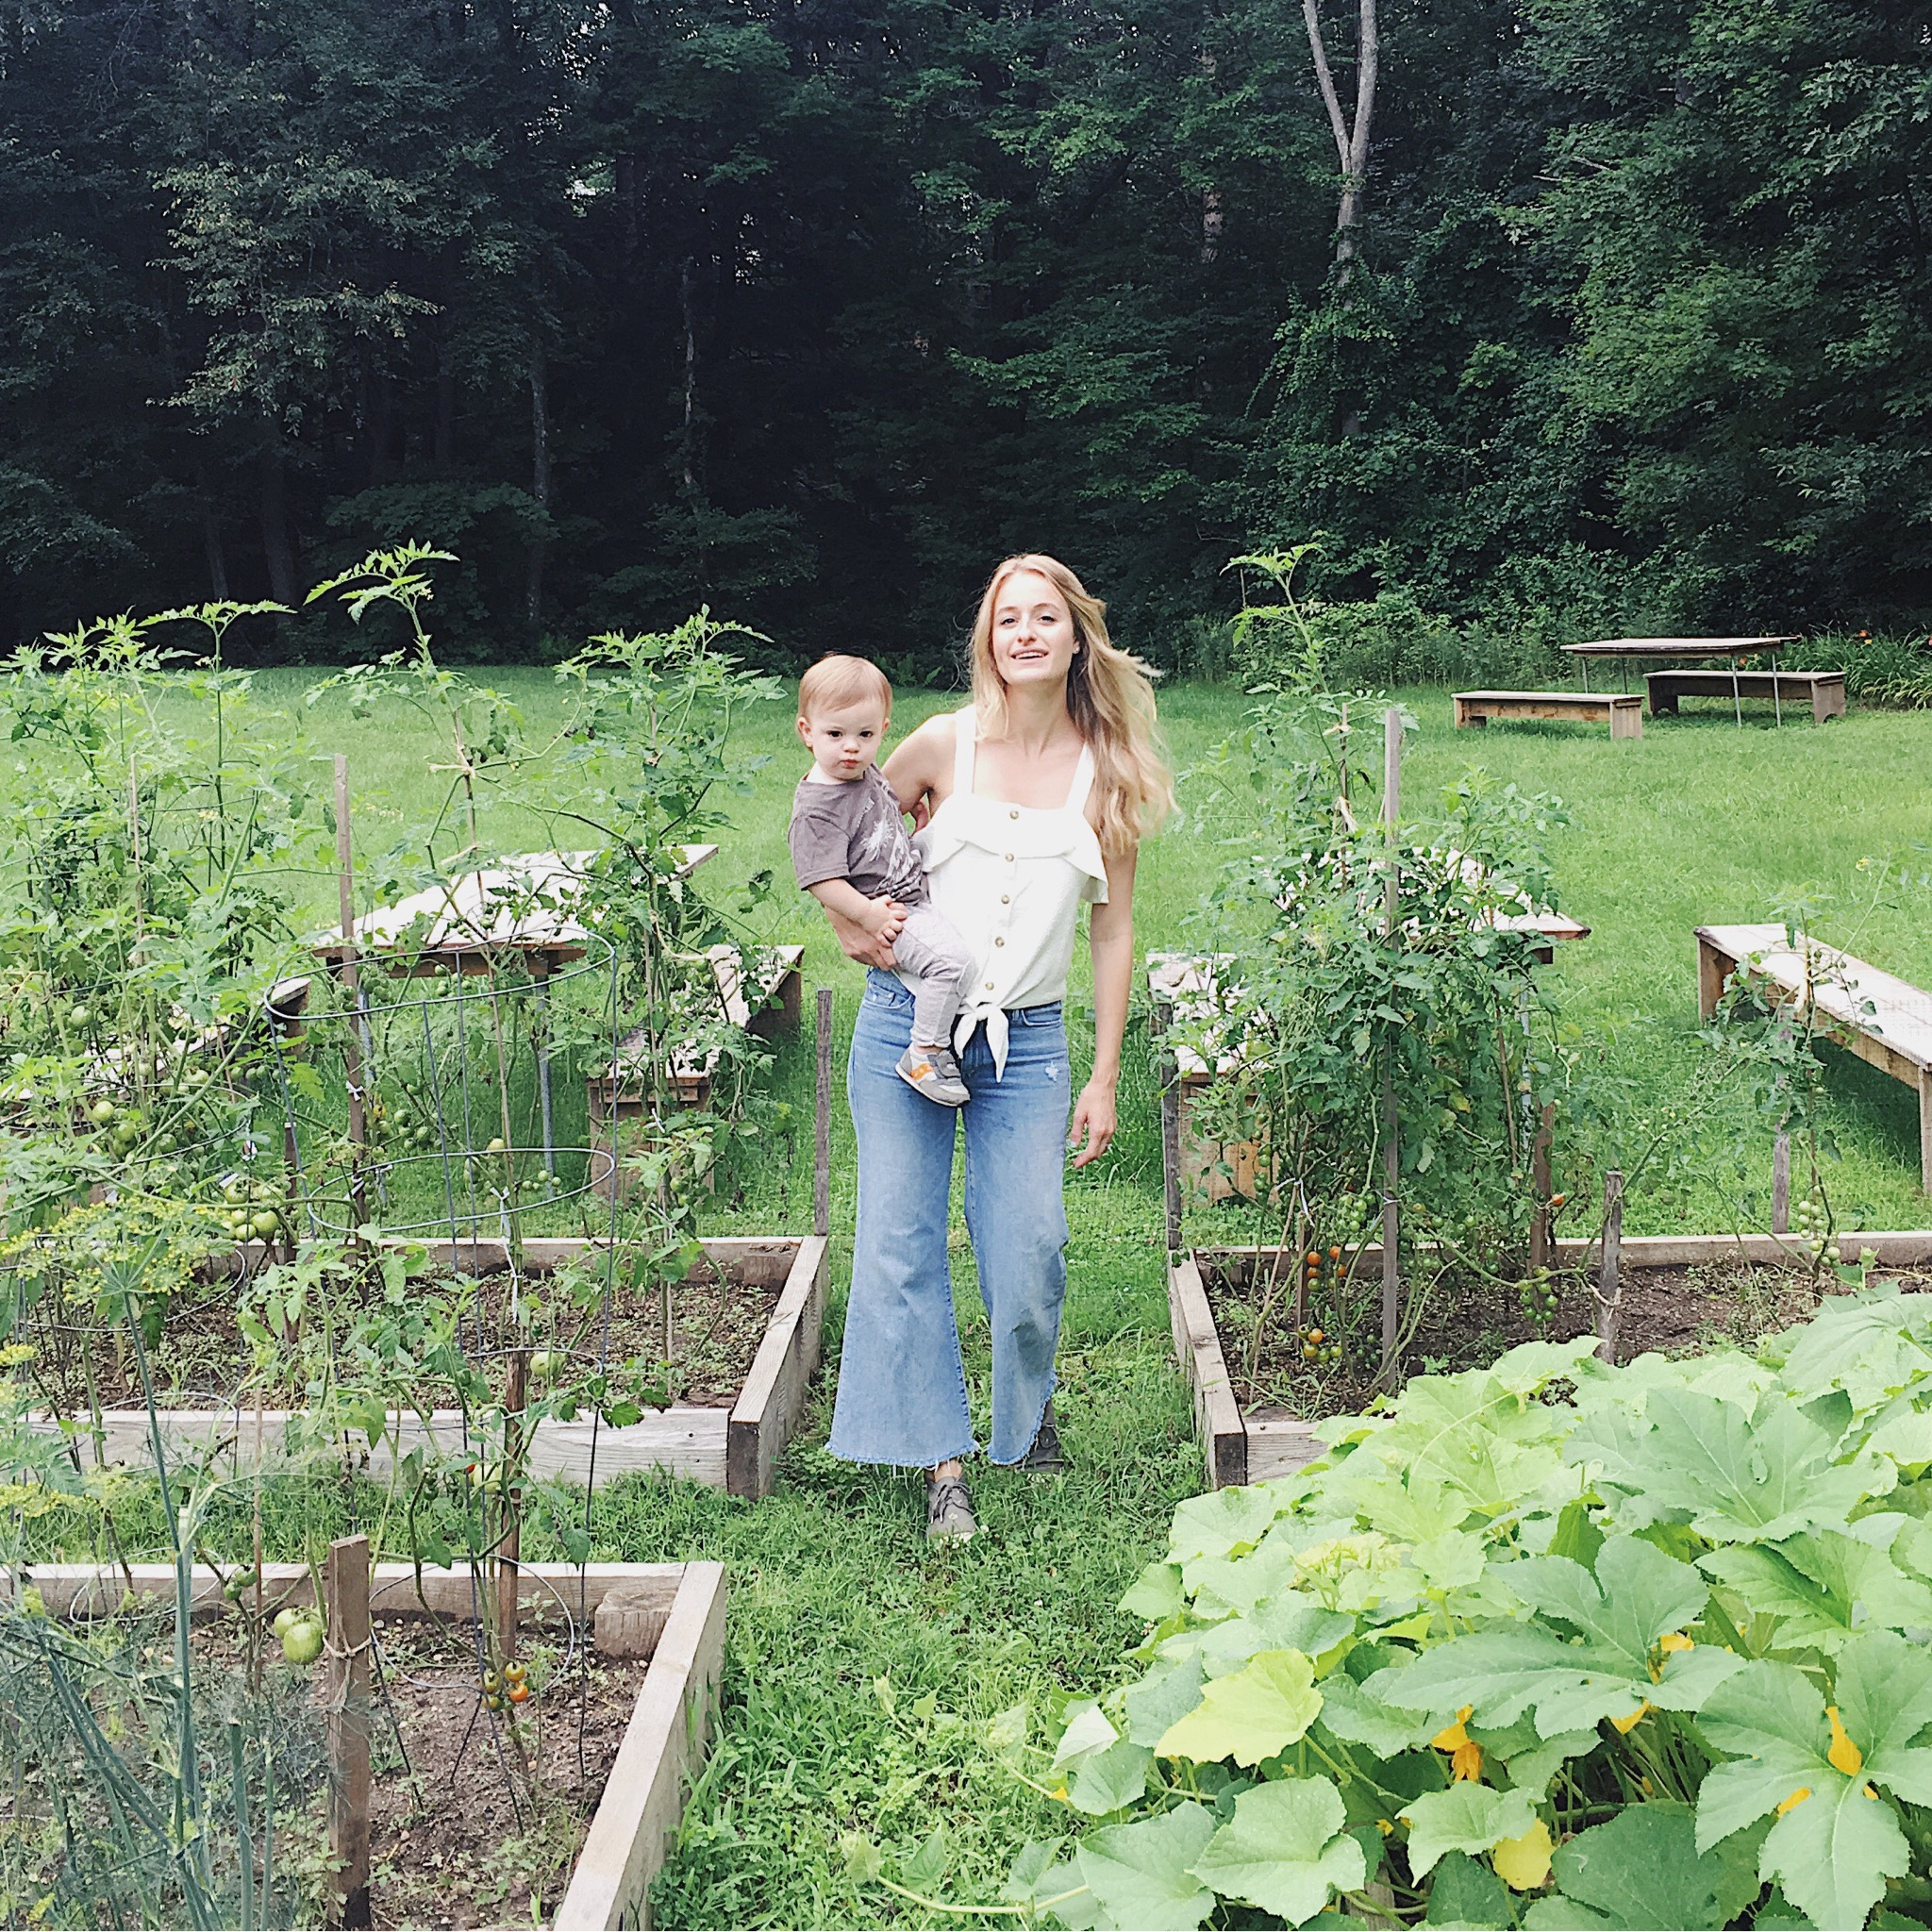 VEGETABLE GARDEN AT THE BRIARCLIFF MOTEL